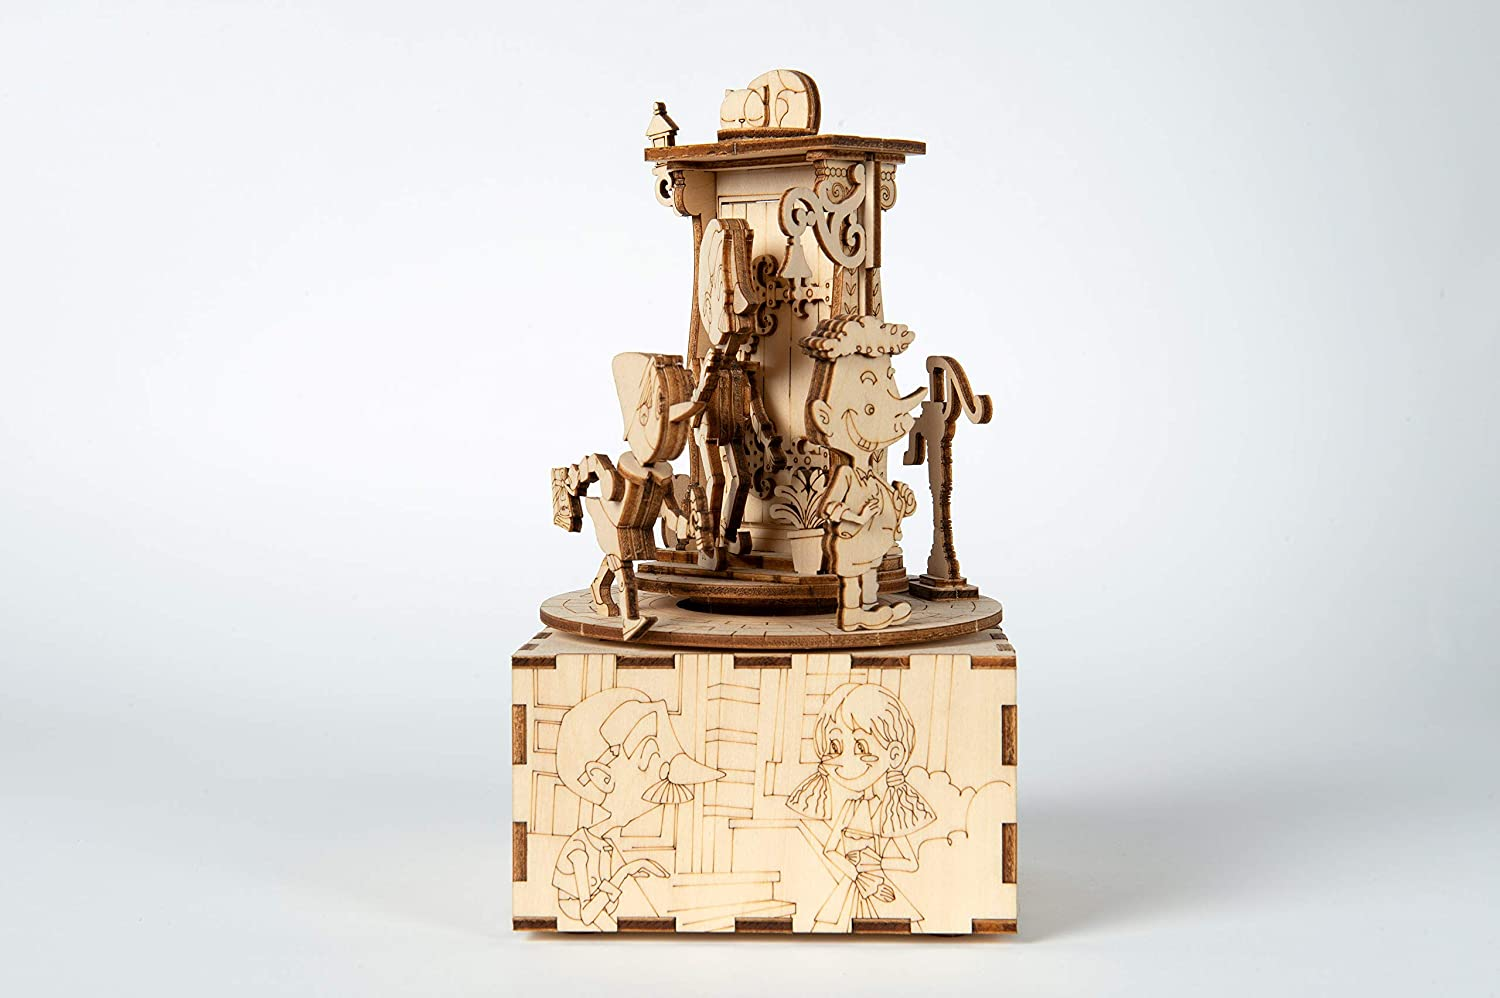 Pinocchio Music Box 3D Puzzle #3 Geppetto /& The Coat Laser Cut Wooden kit Kardamom